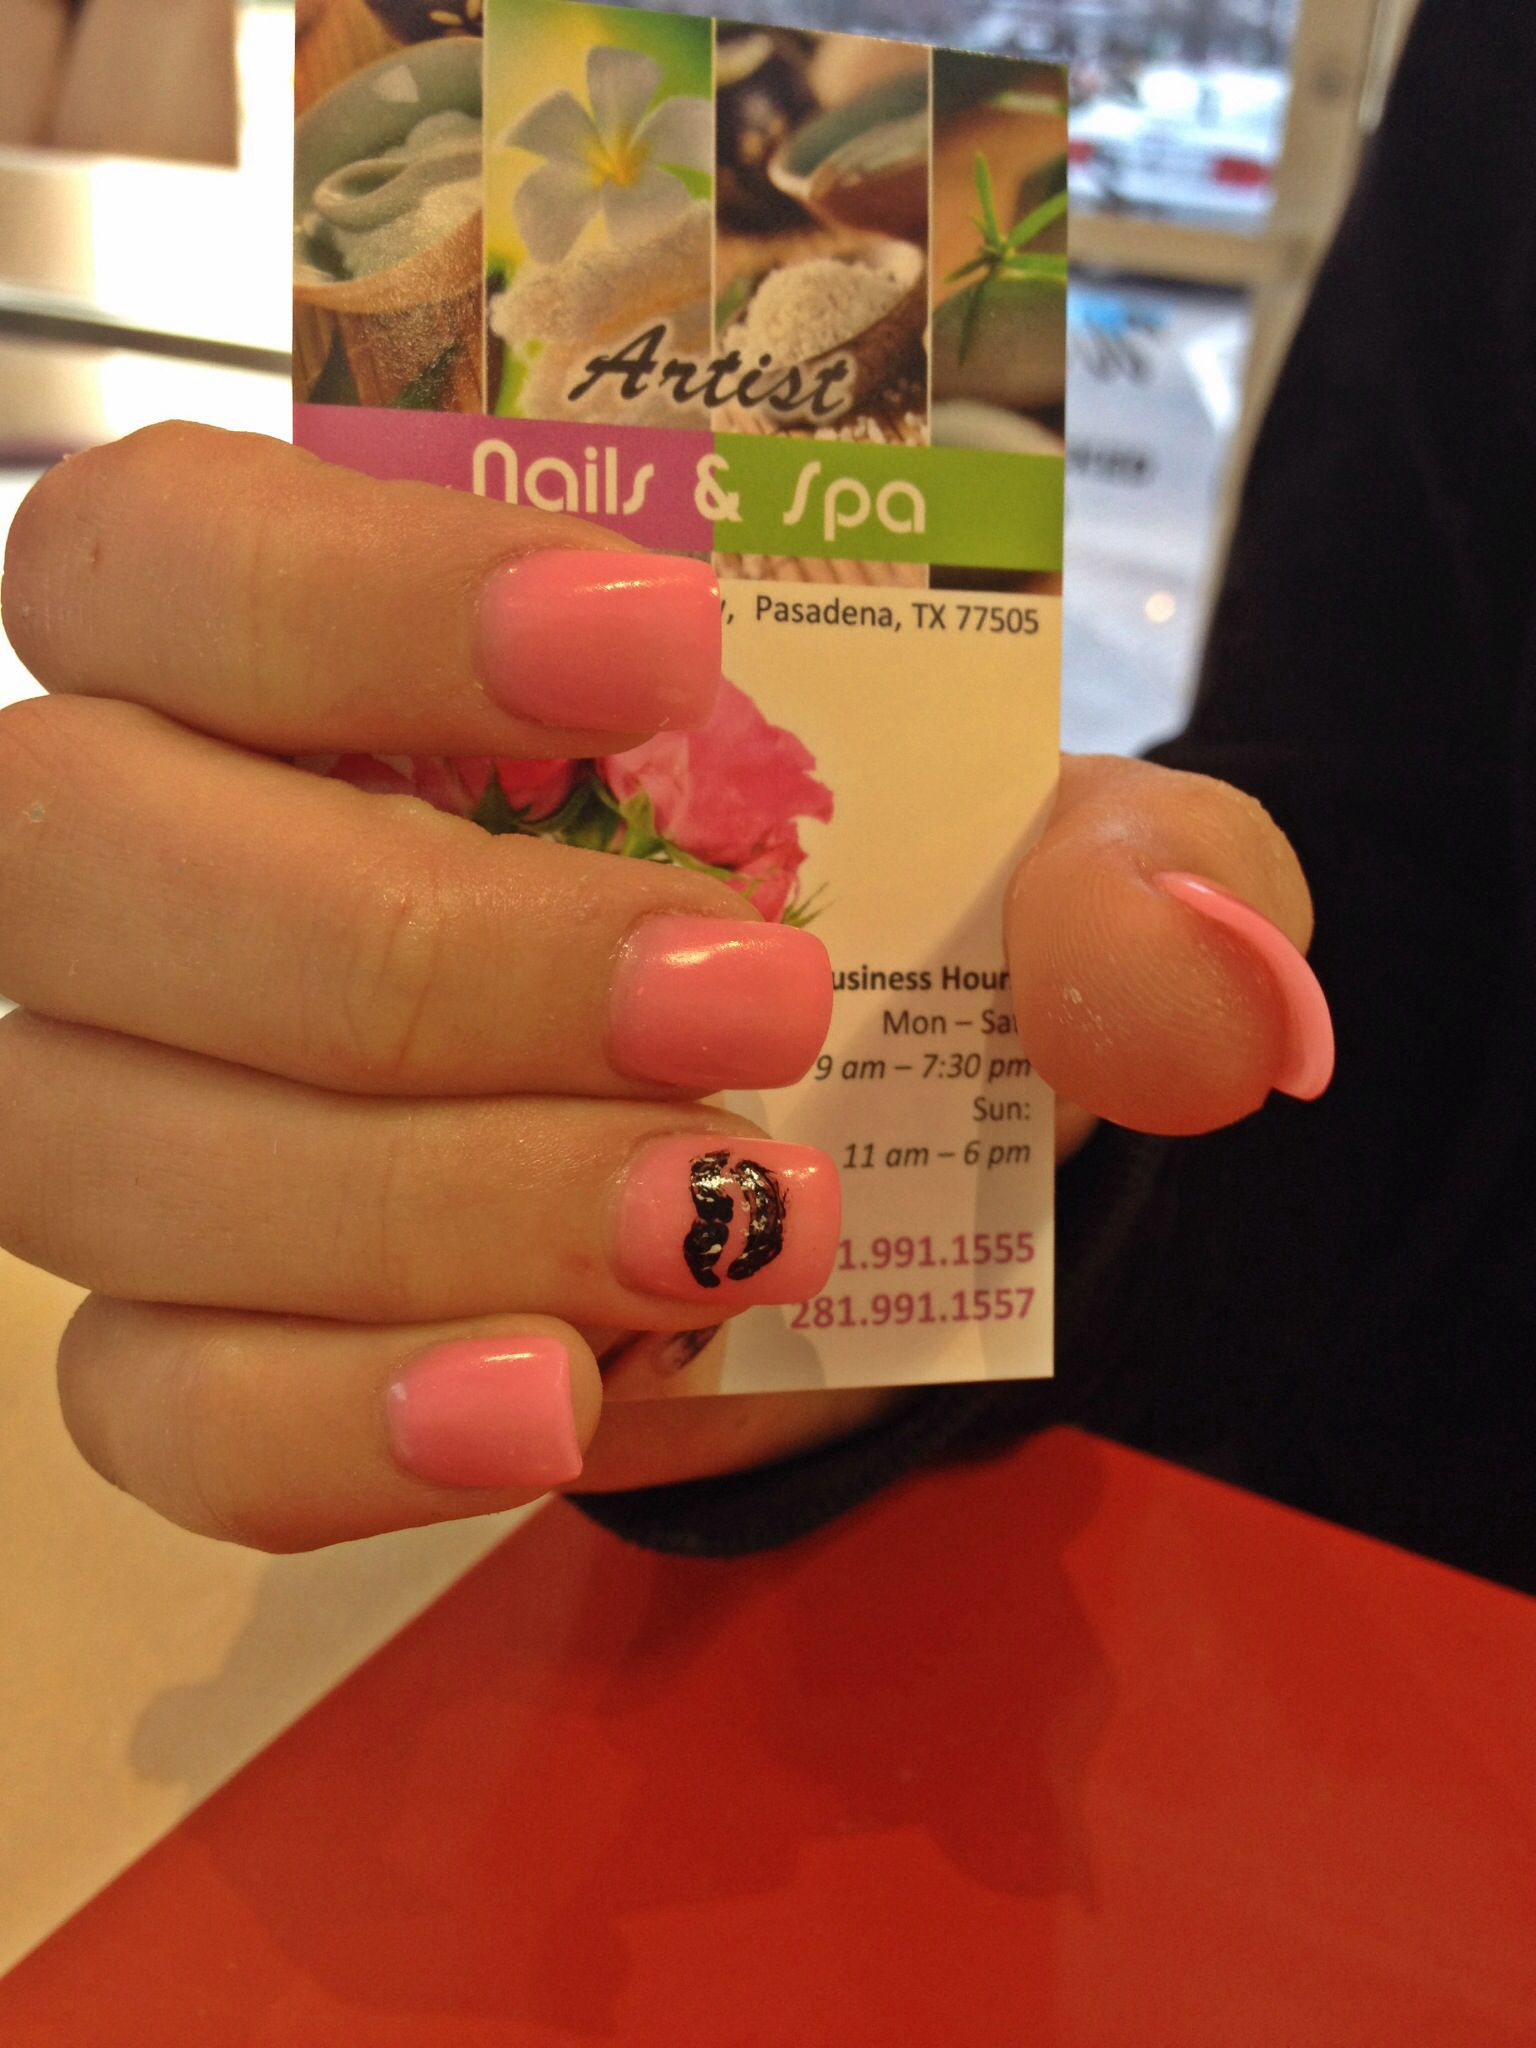 Pink nails with lips designs | ARTIST NAILS AND SPA | Pinterest ...